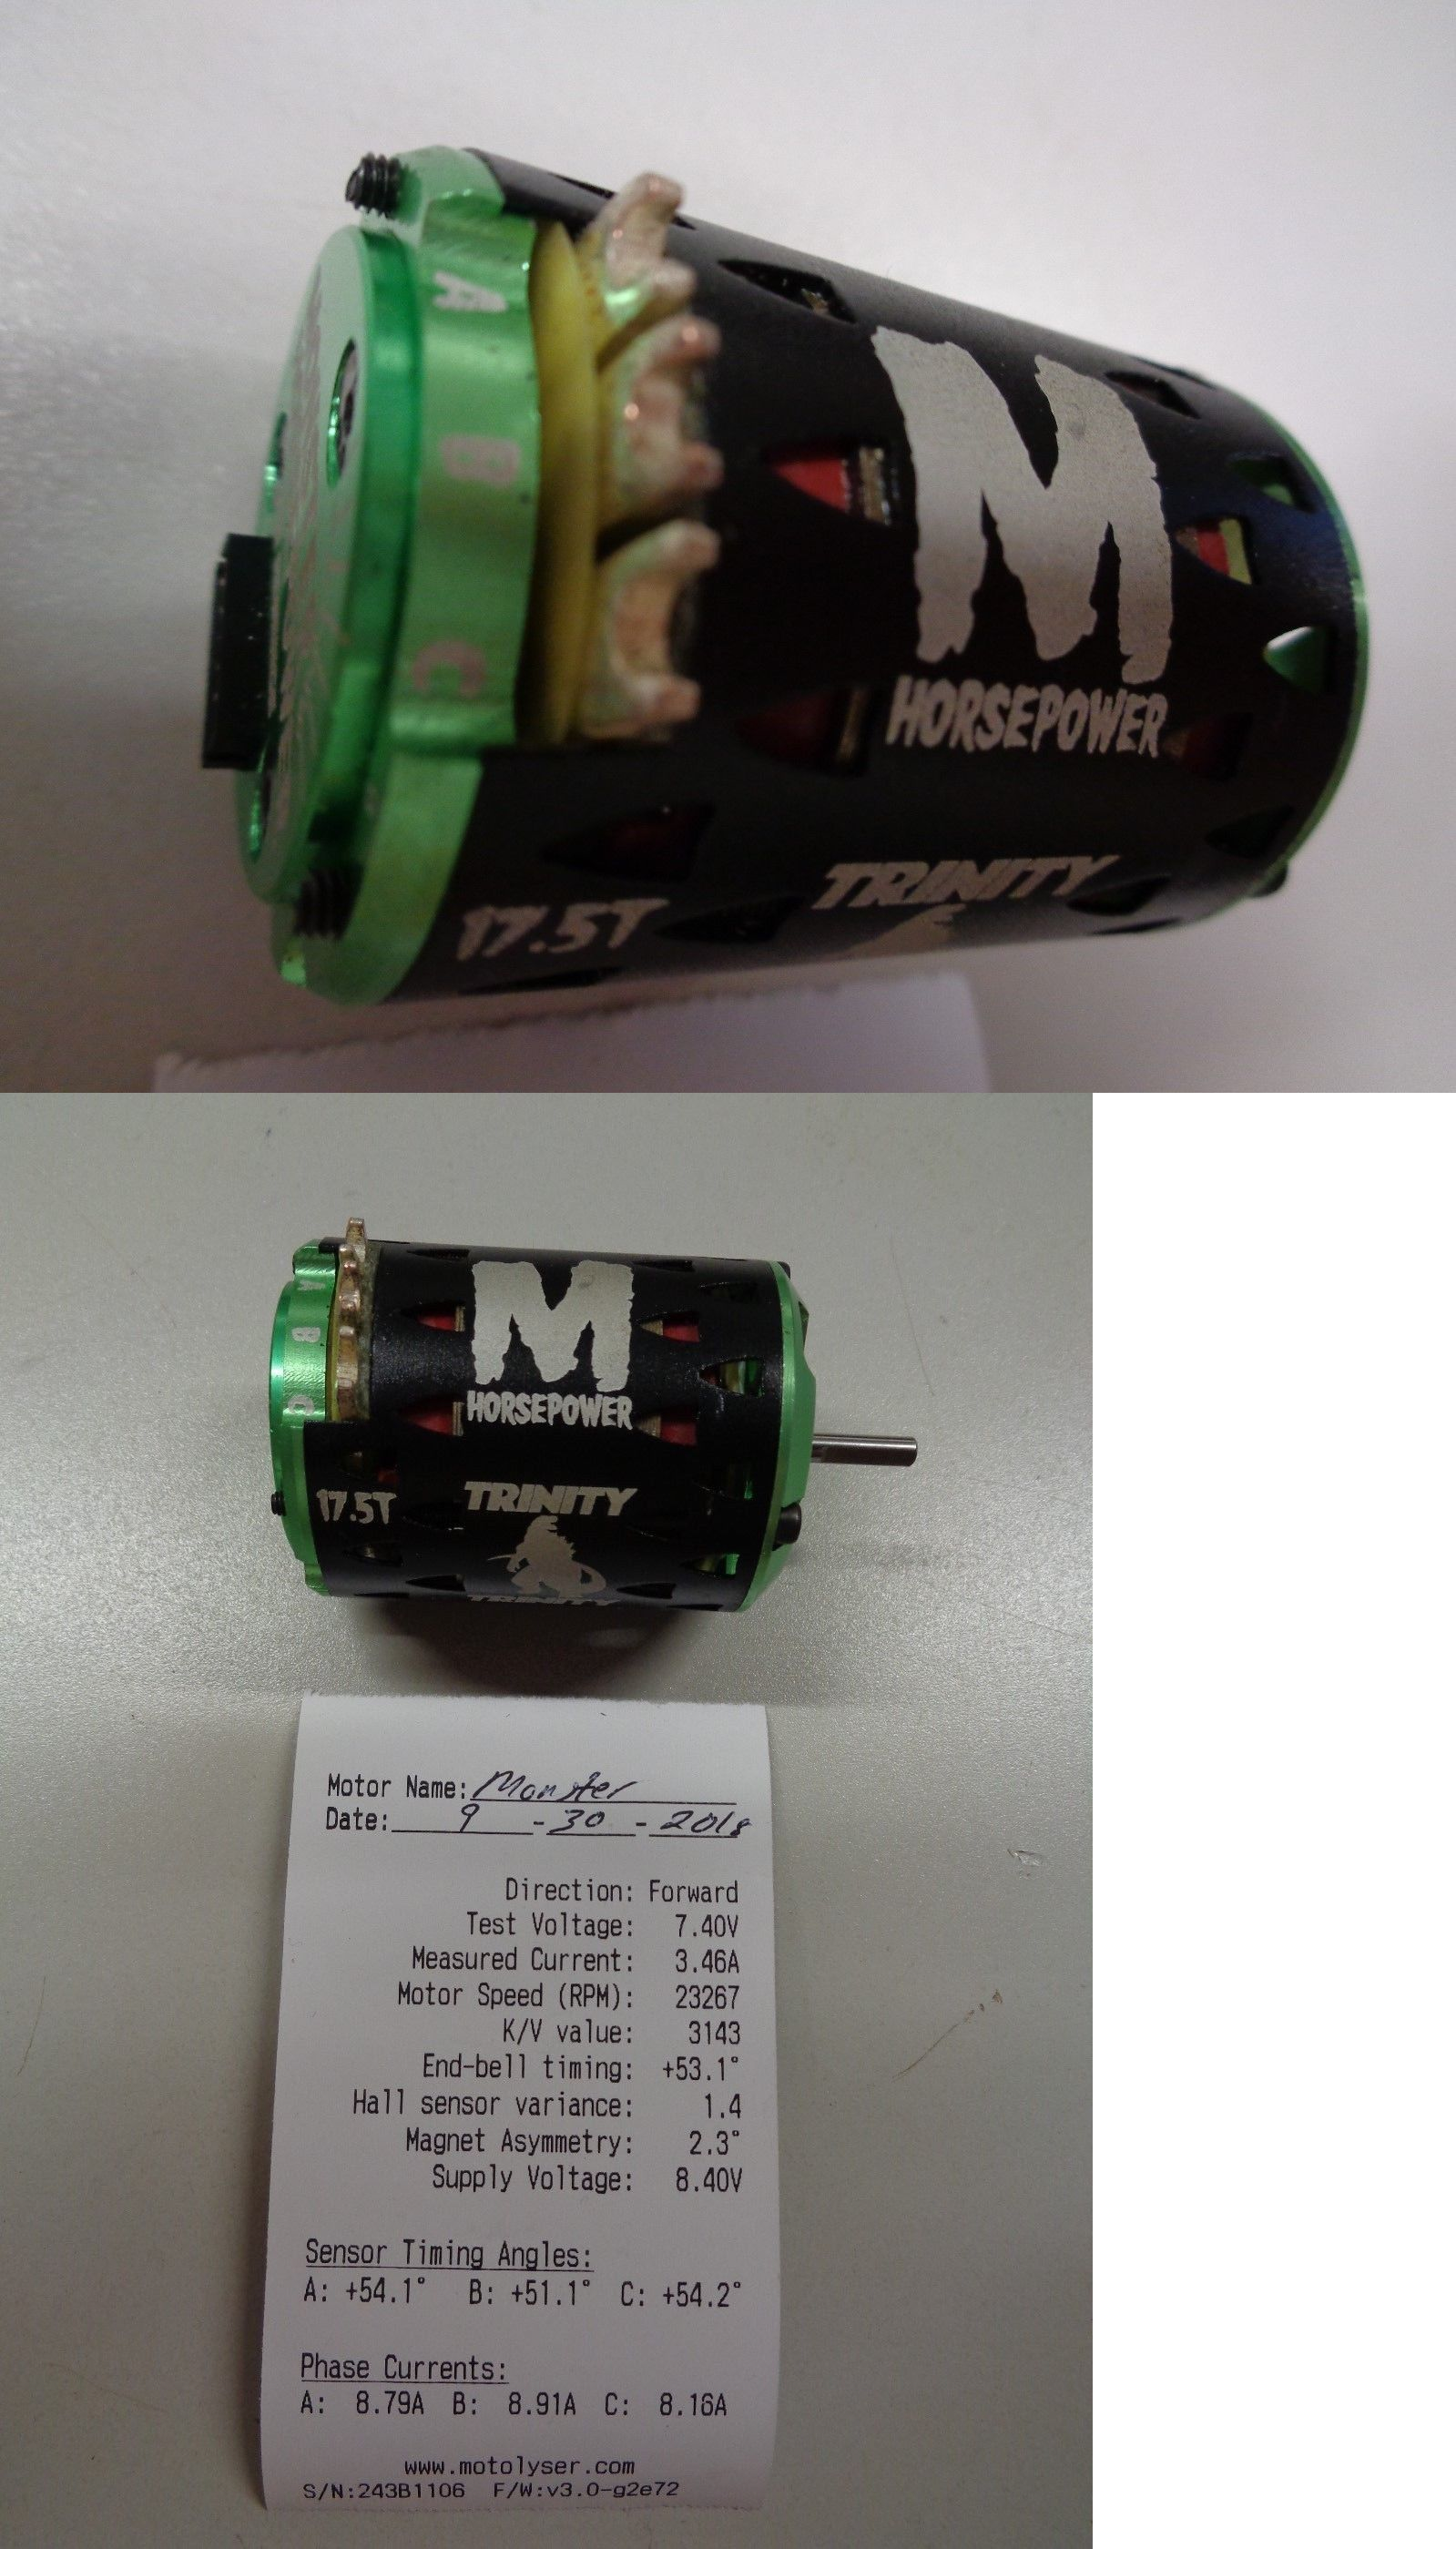 hight resolution of electric motors 100058 new trinity monster 17 5 brushless motor buy it now only 90 on ebay electric motors trinity monster brushless motor